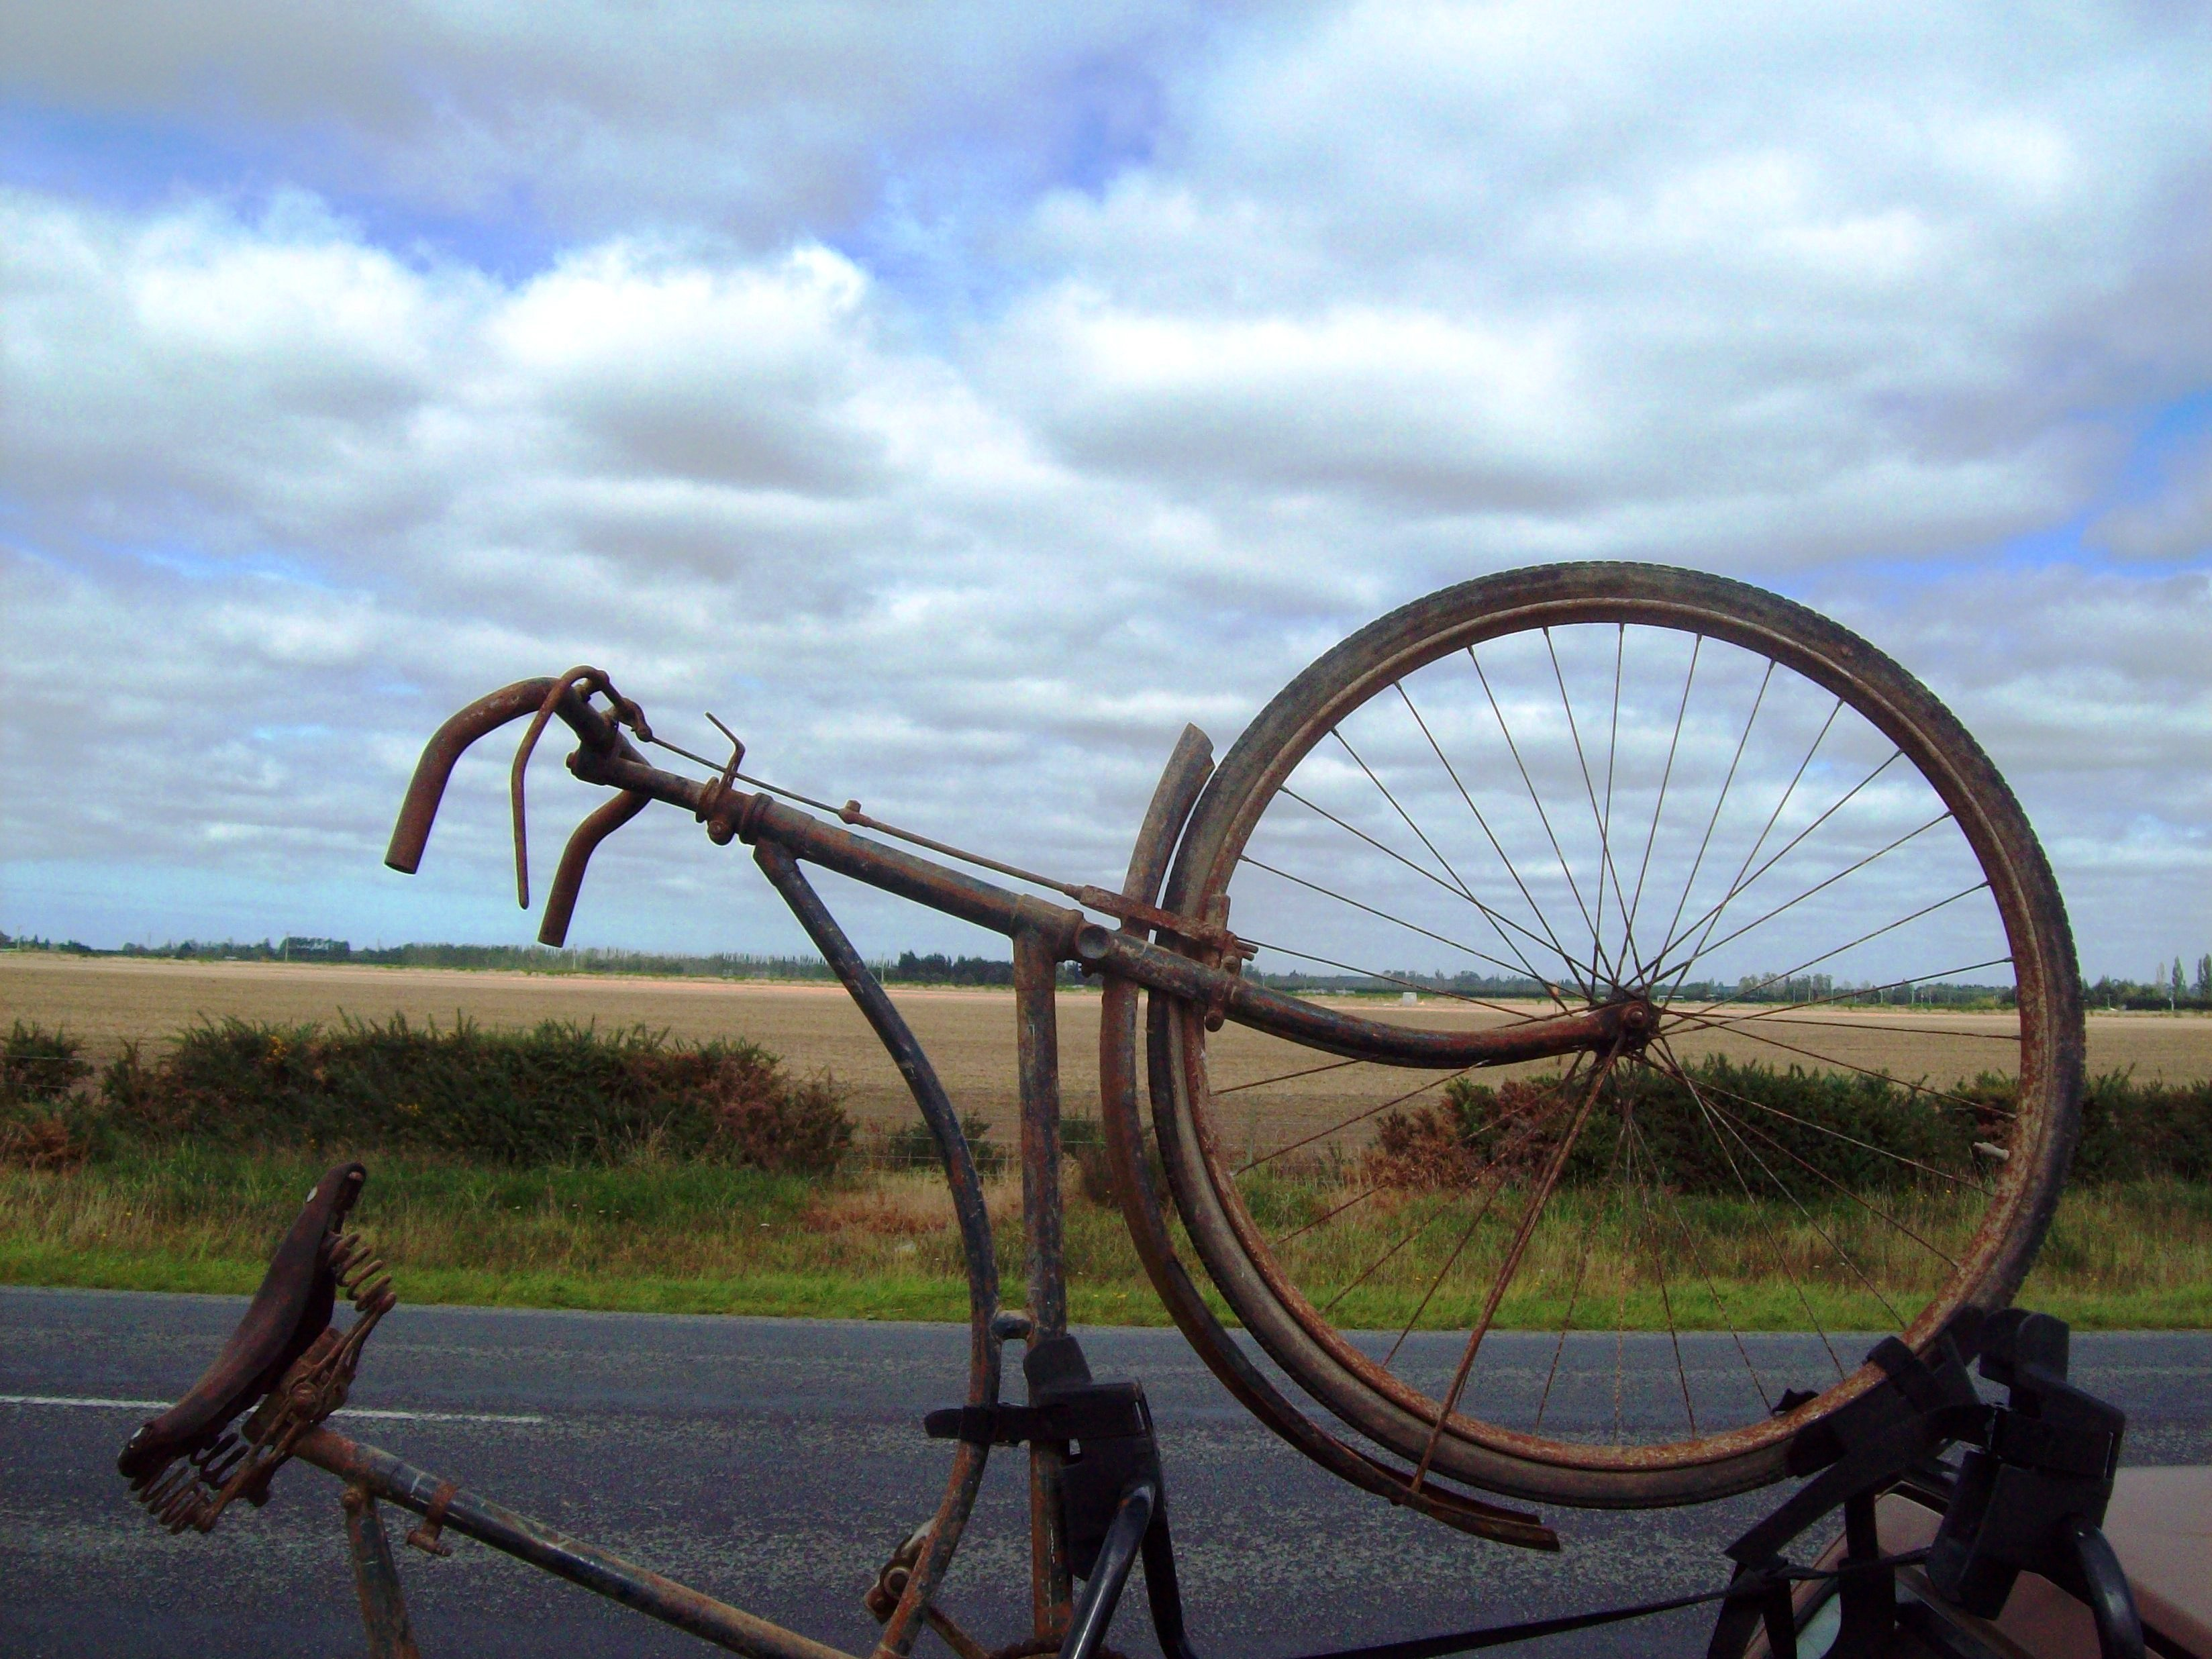 Pre war Somme Bicycle -  Ashburton Airpo, Bicycle, Bike, Clouds, Cycle, HQ Photo